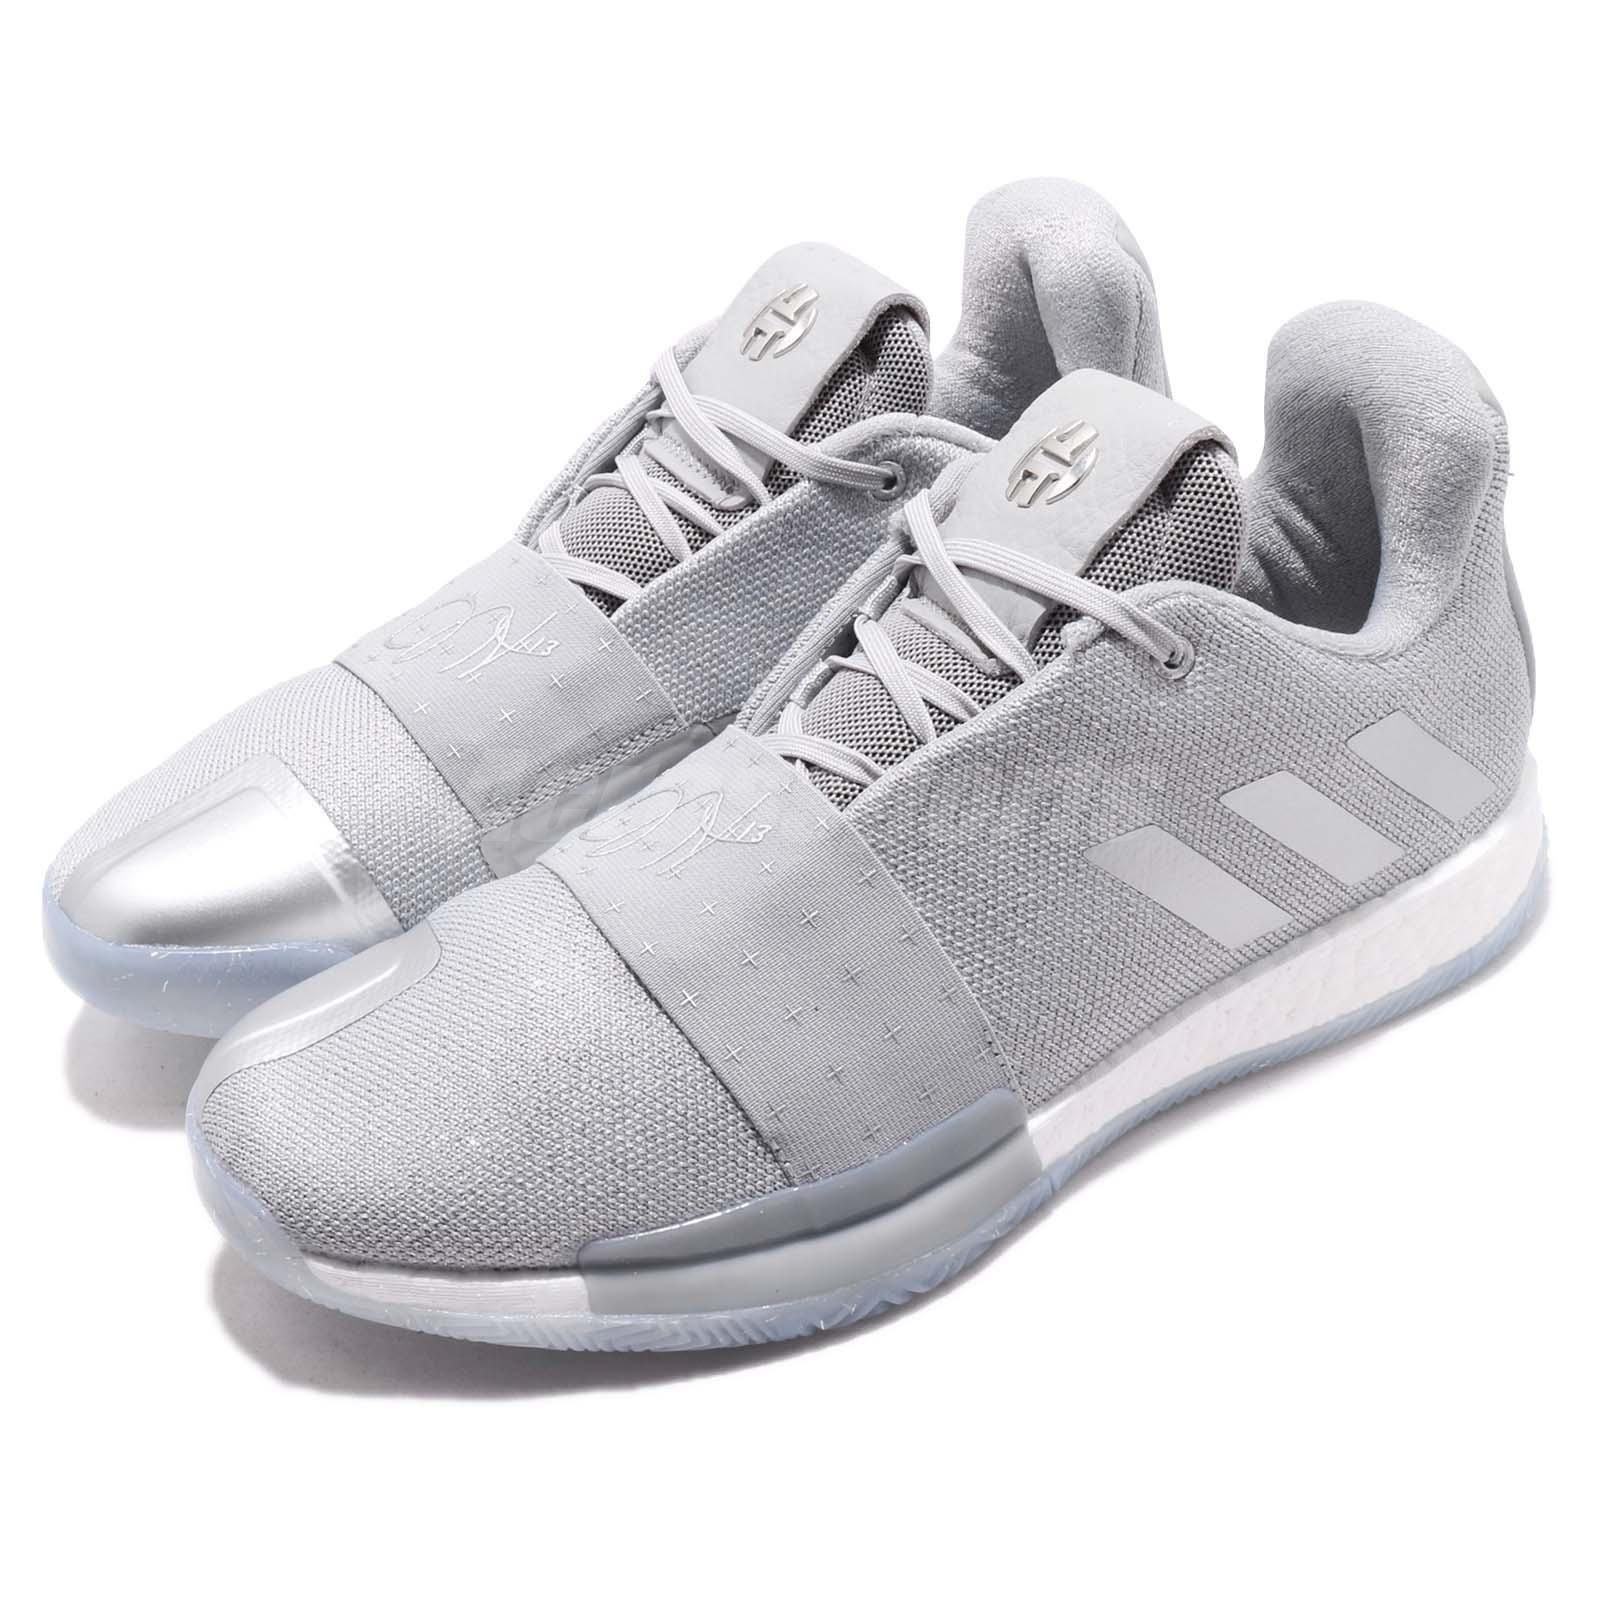 Adidas Harden Vol 3 Boost James Grey White Men Basketball Shoes